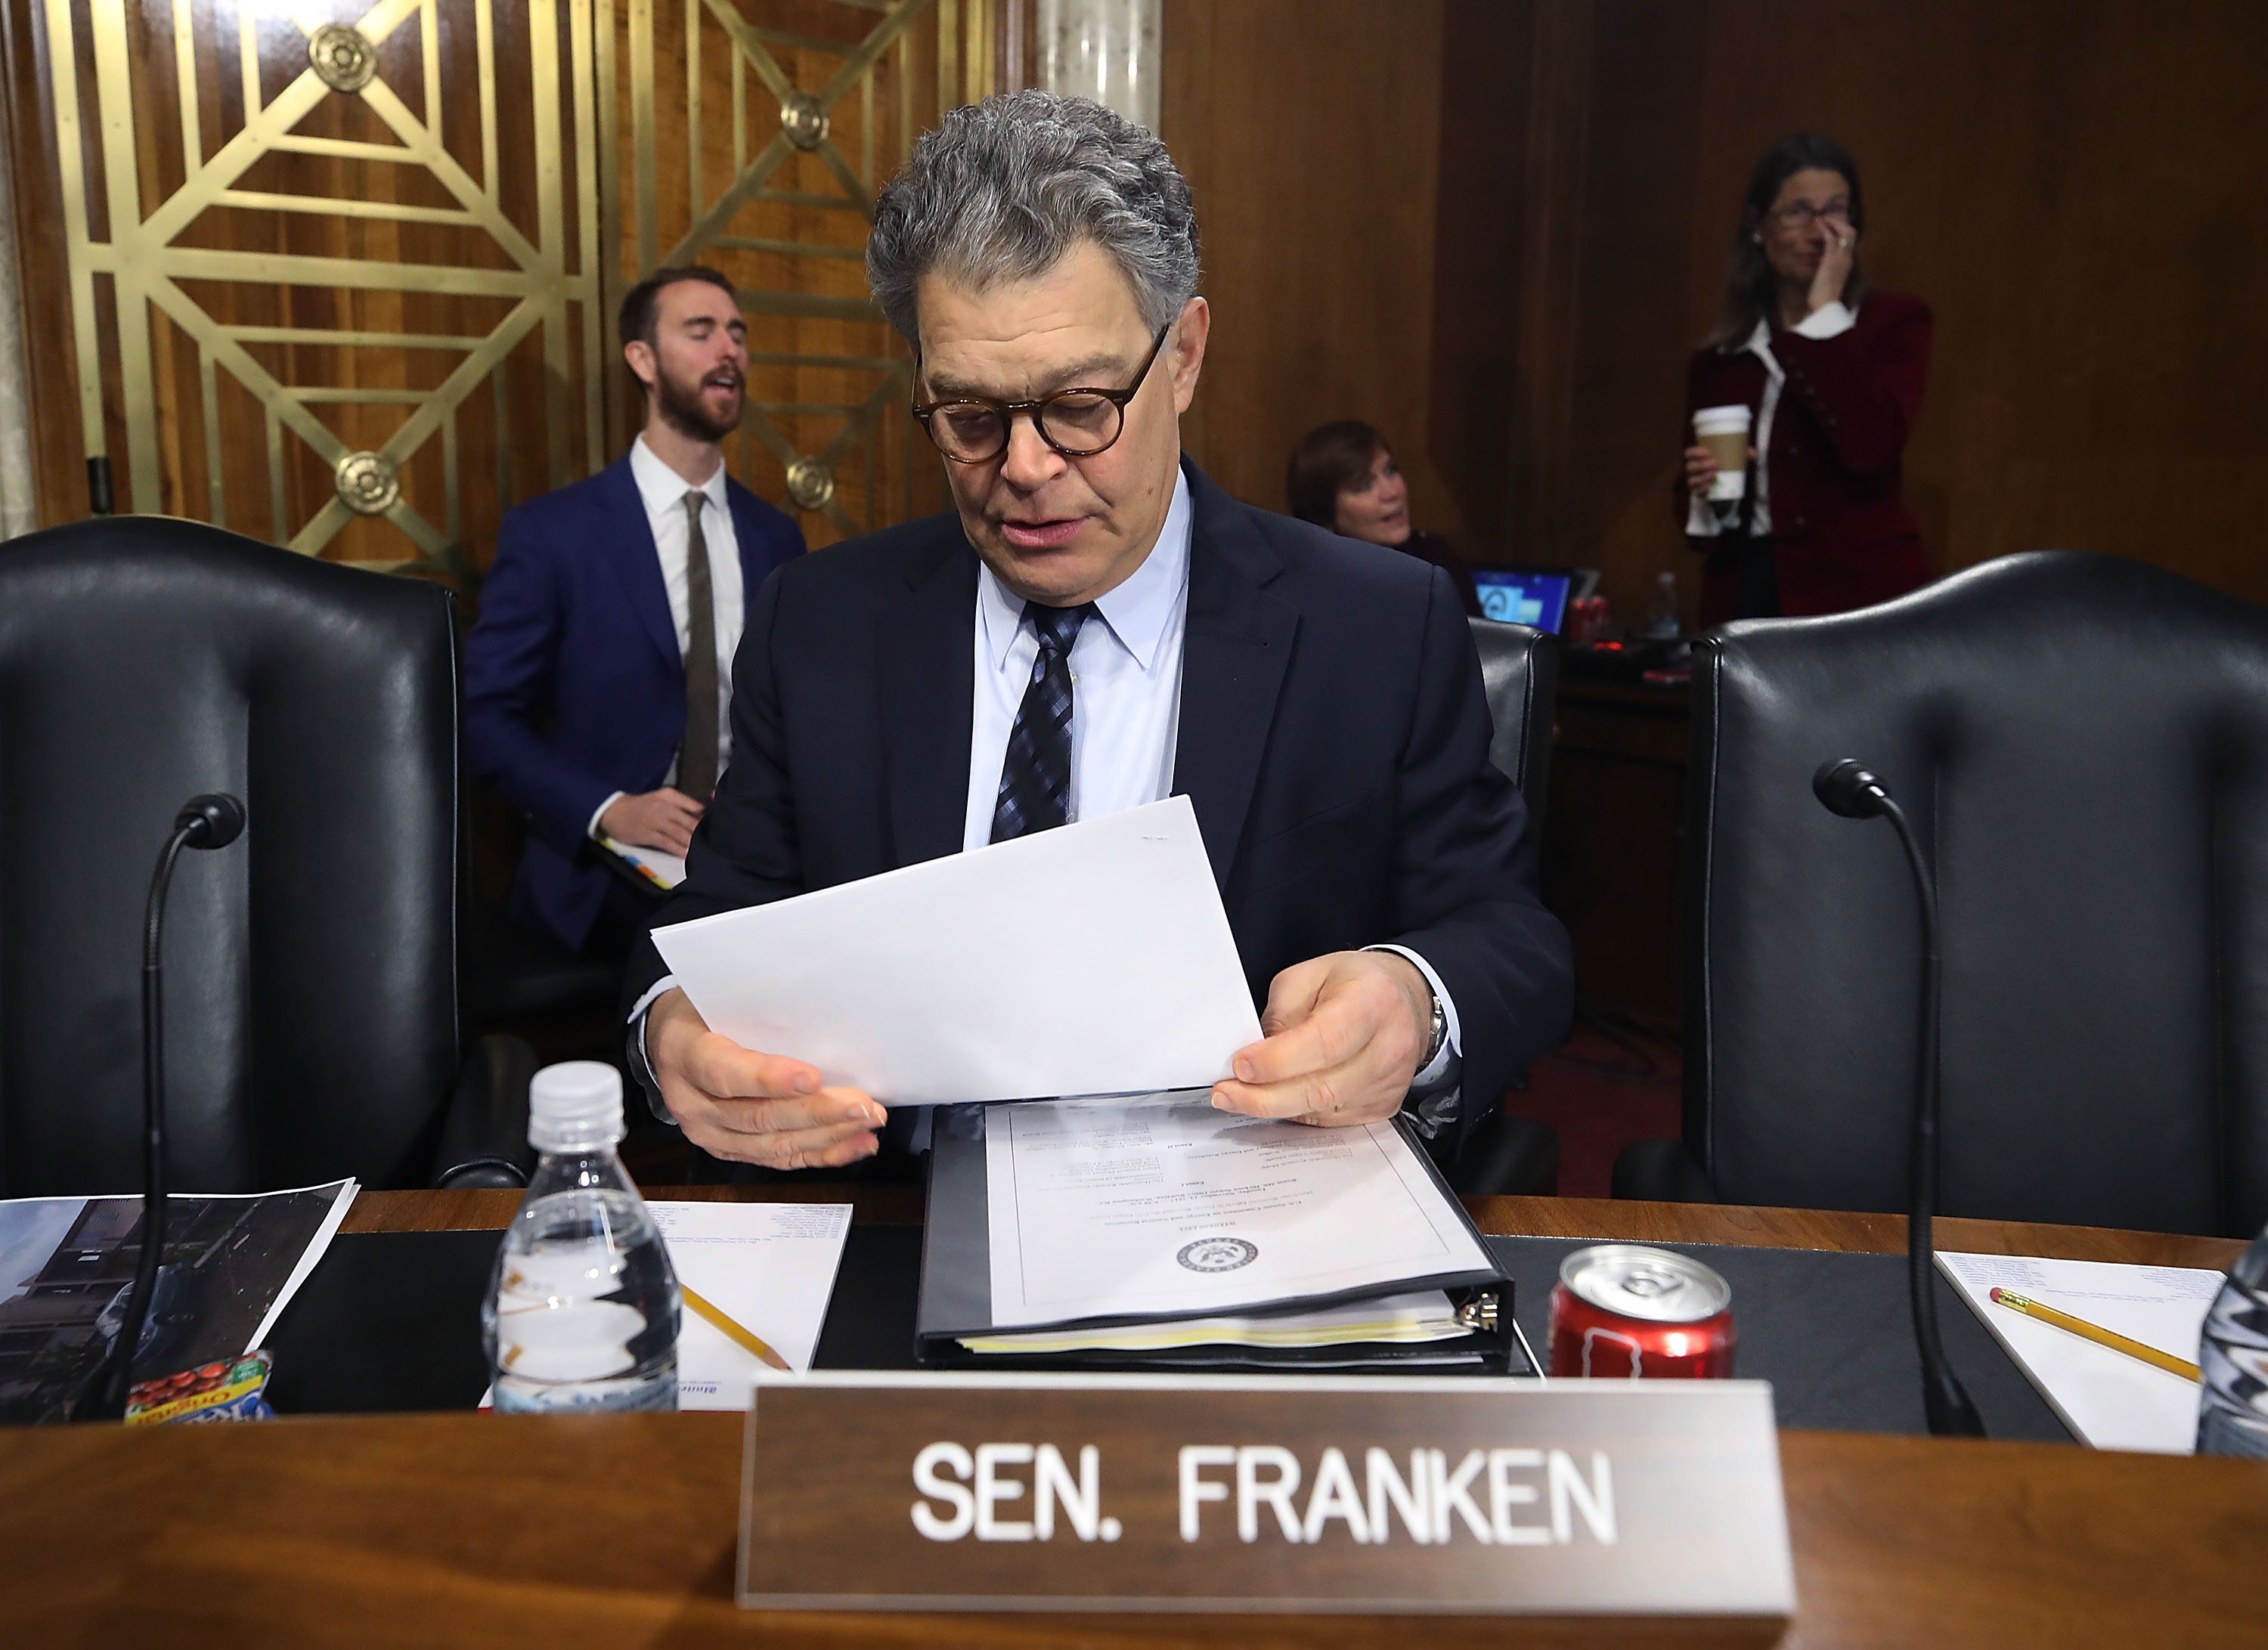 Sen. Al Franken looks over his papers during a Senate Energy and Natural Resources Committee hearing on November 14, 2017 in Washington, DC.